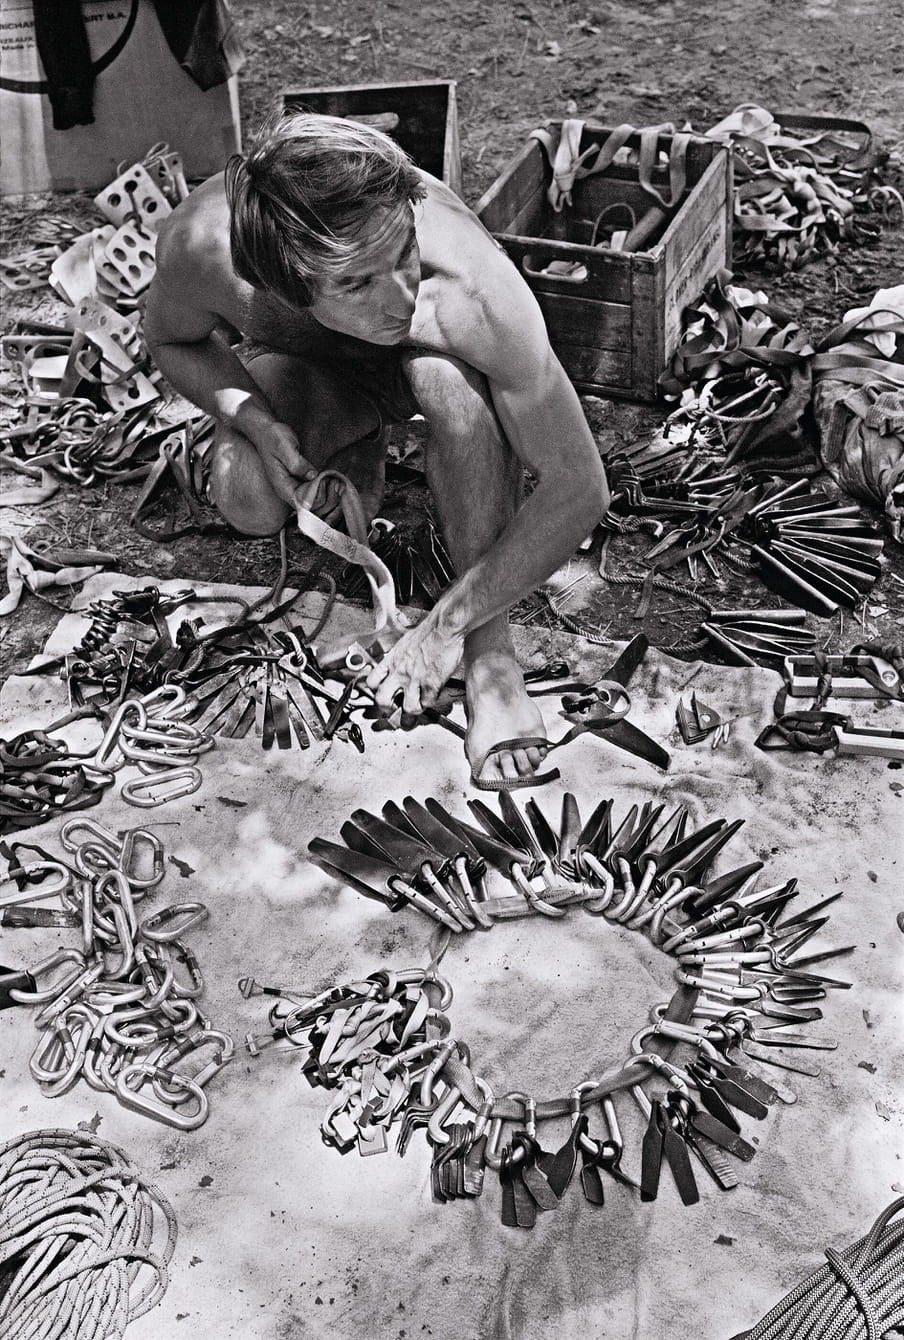 Black and white photo of man working on wooden tools